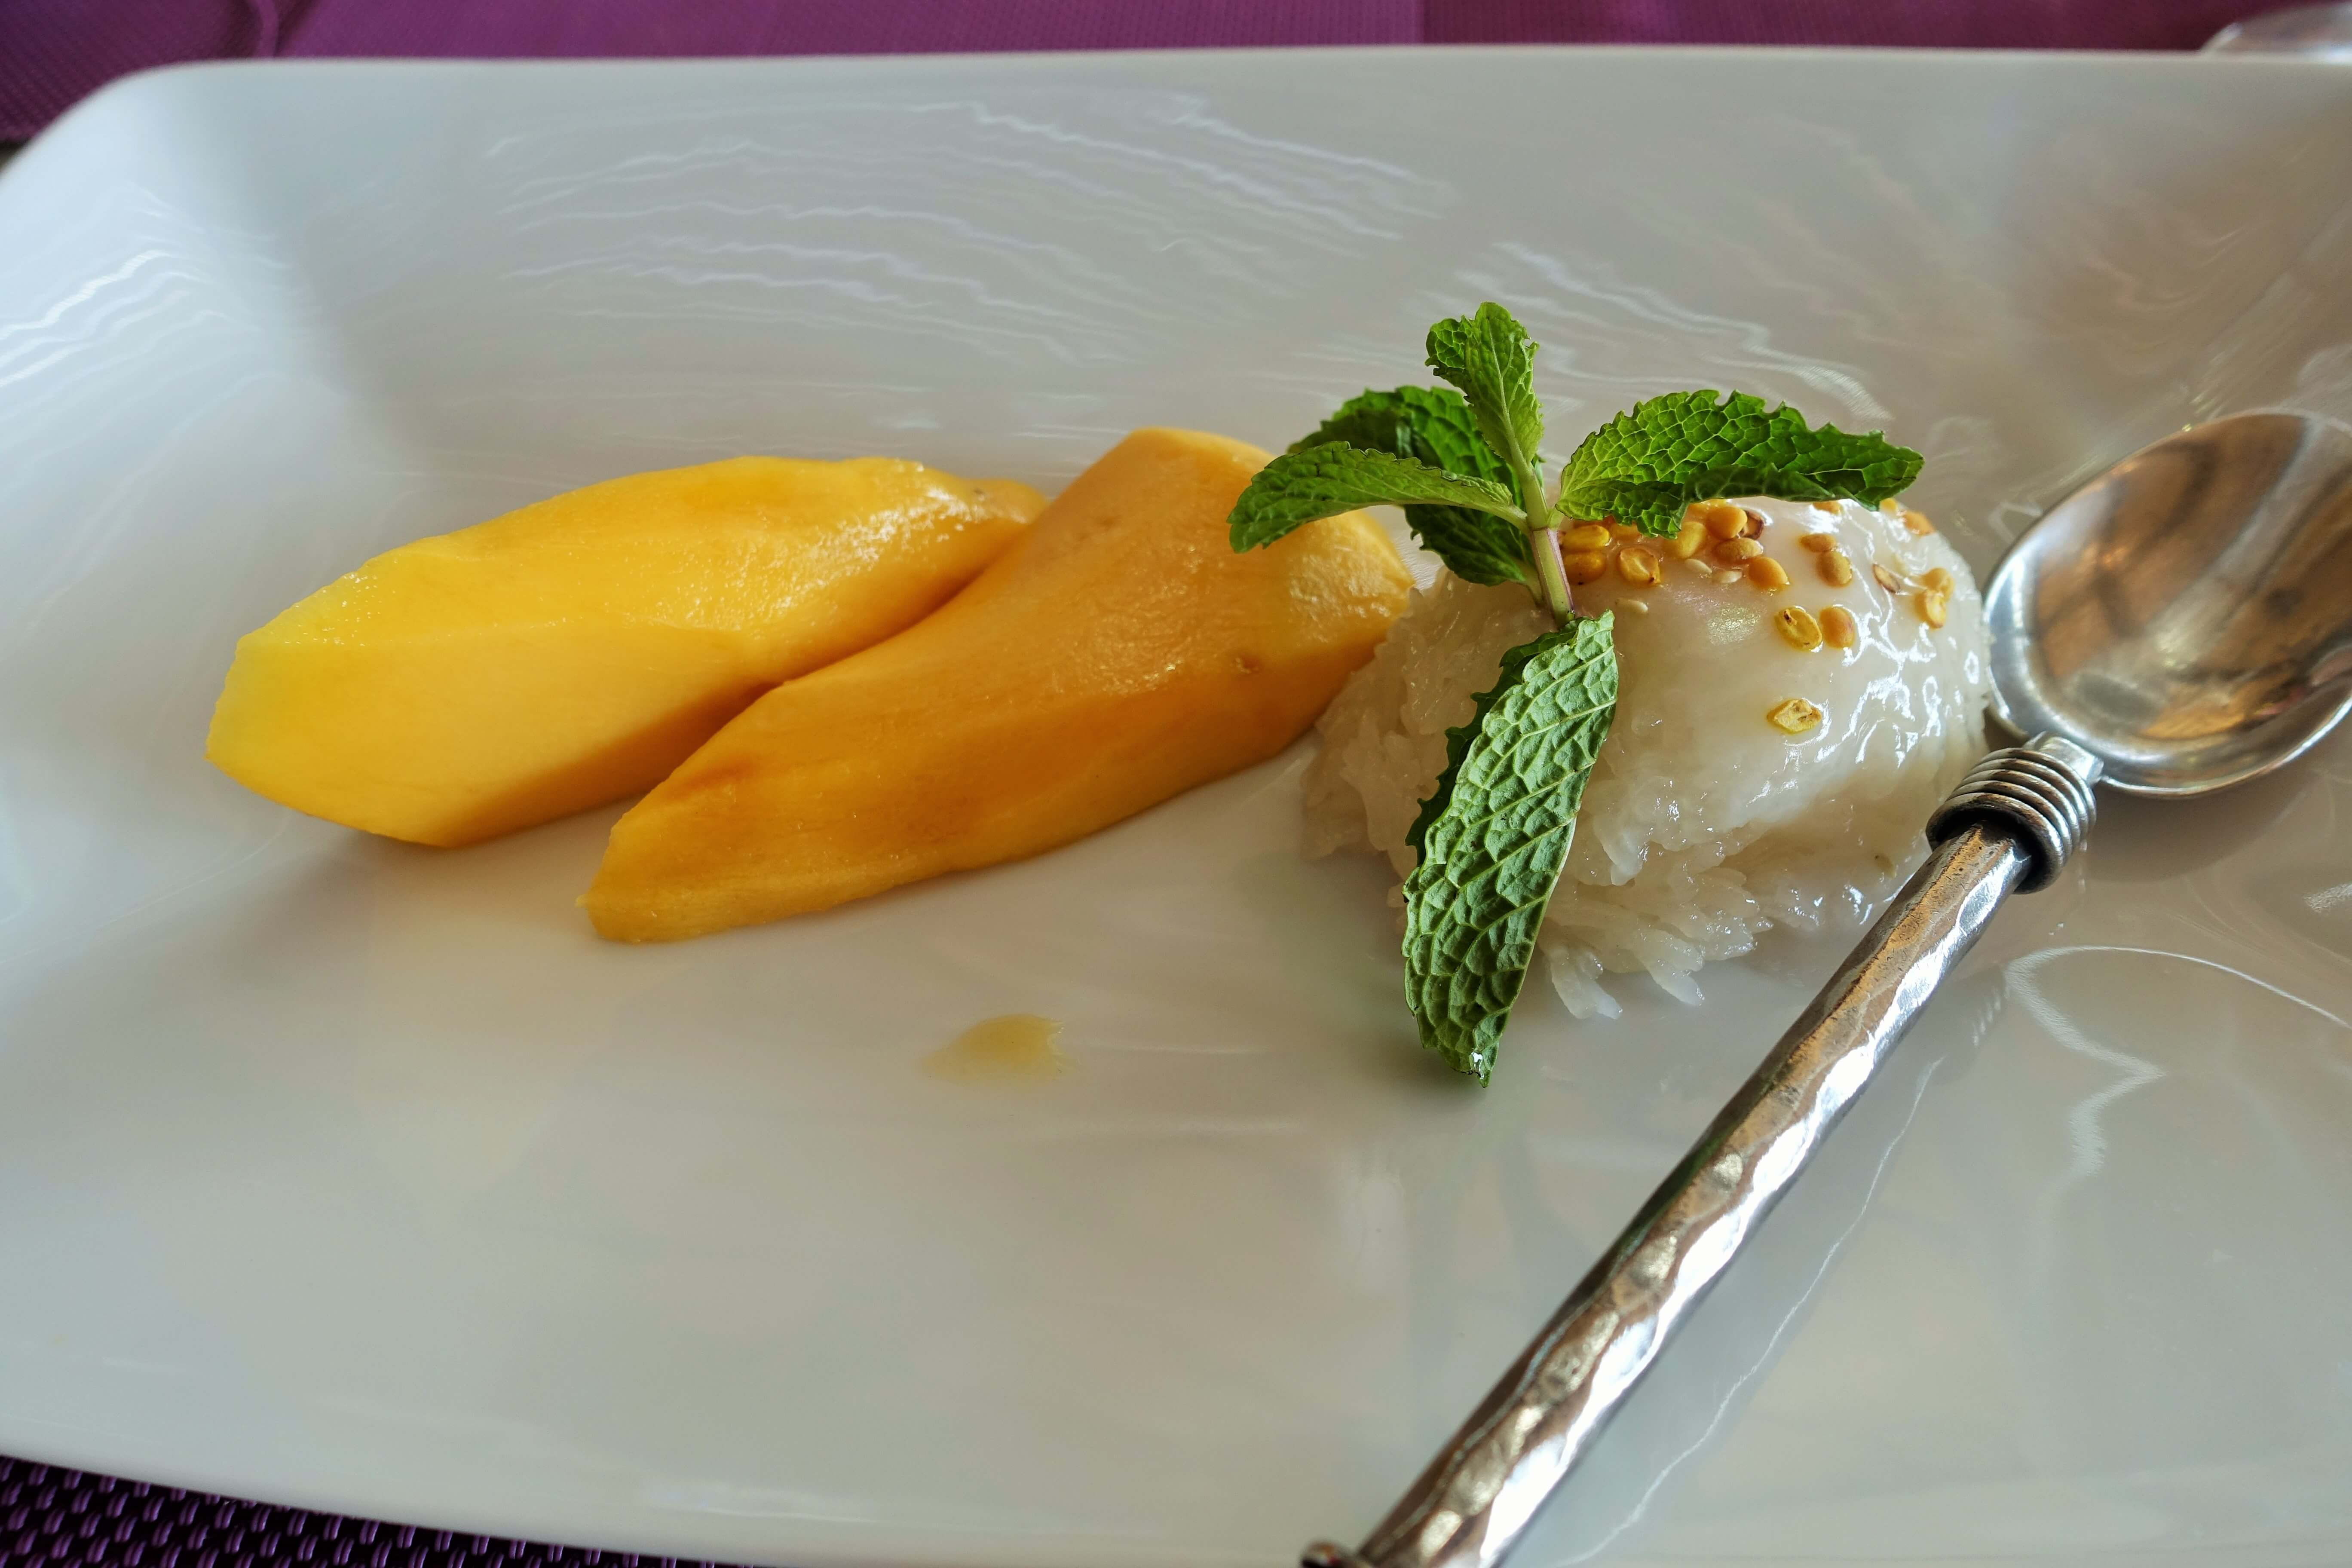 mango cheeks with sticky rice and a silver spoon